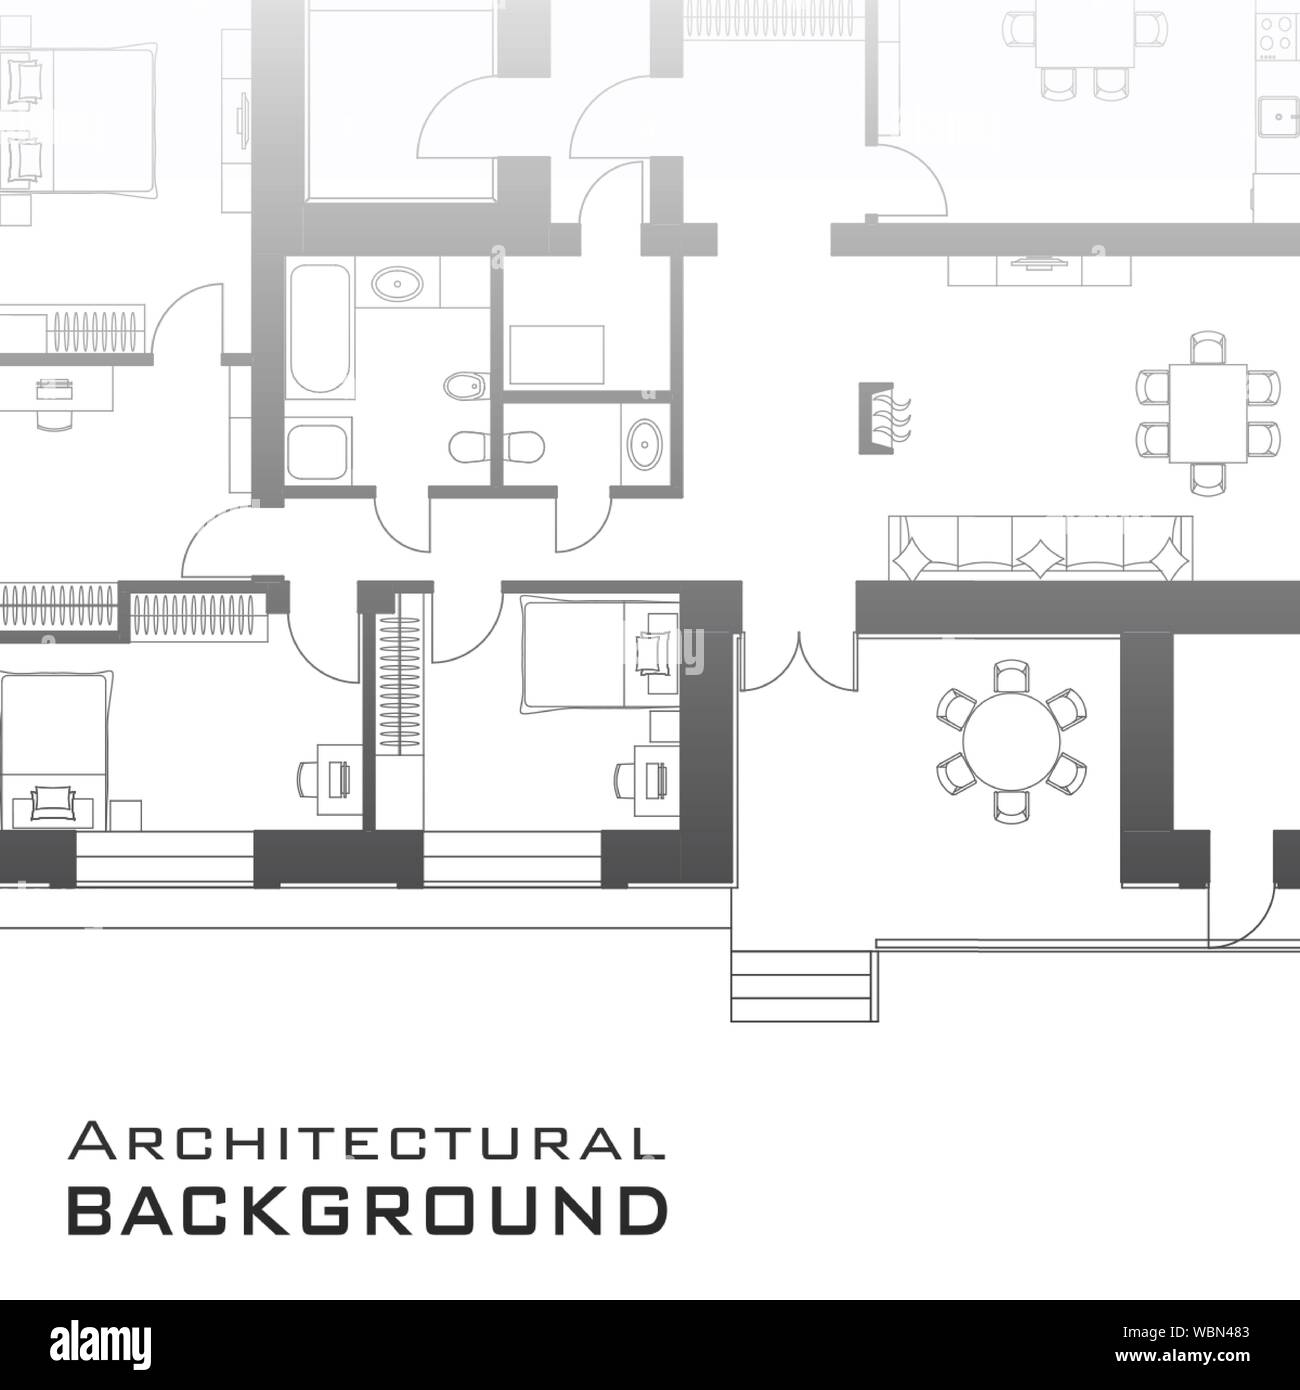 Urban background. Part of architectural project, architectural plan of a residential building. Black and white vector illustration EPS10 Stock Vector